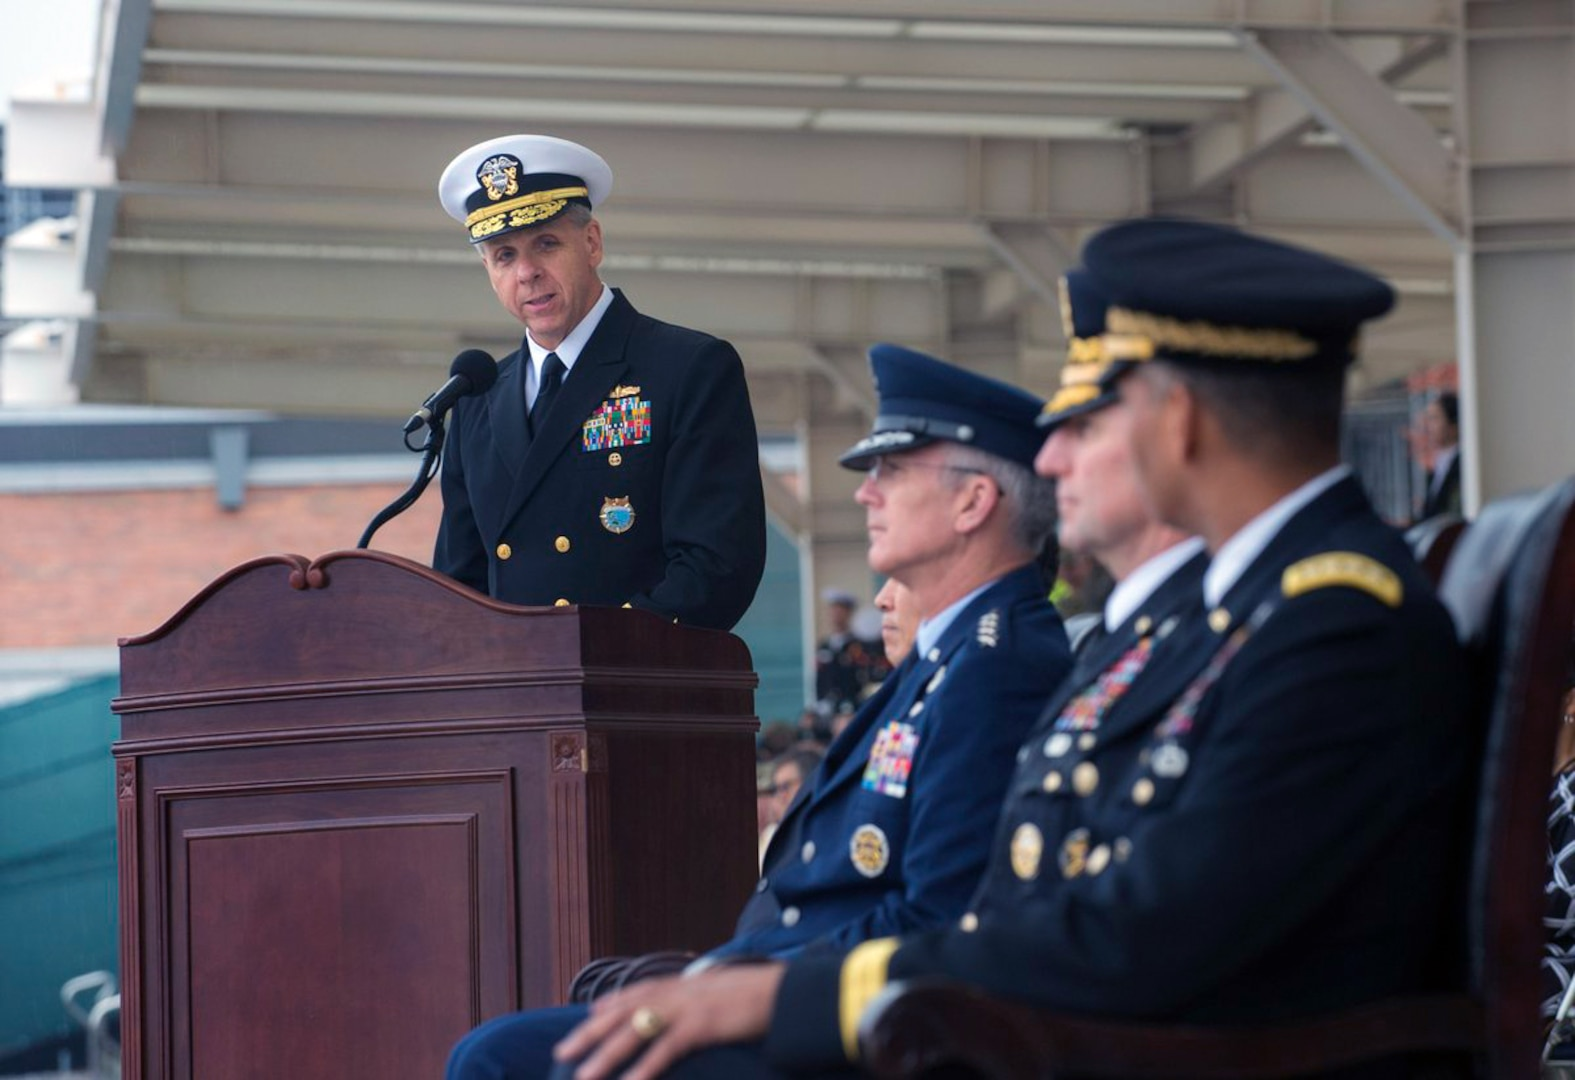 ADM Davidson - Remarks at the UNC/CFC/USFK Change of Command